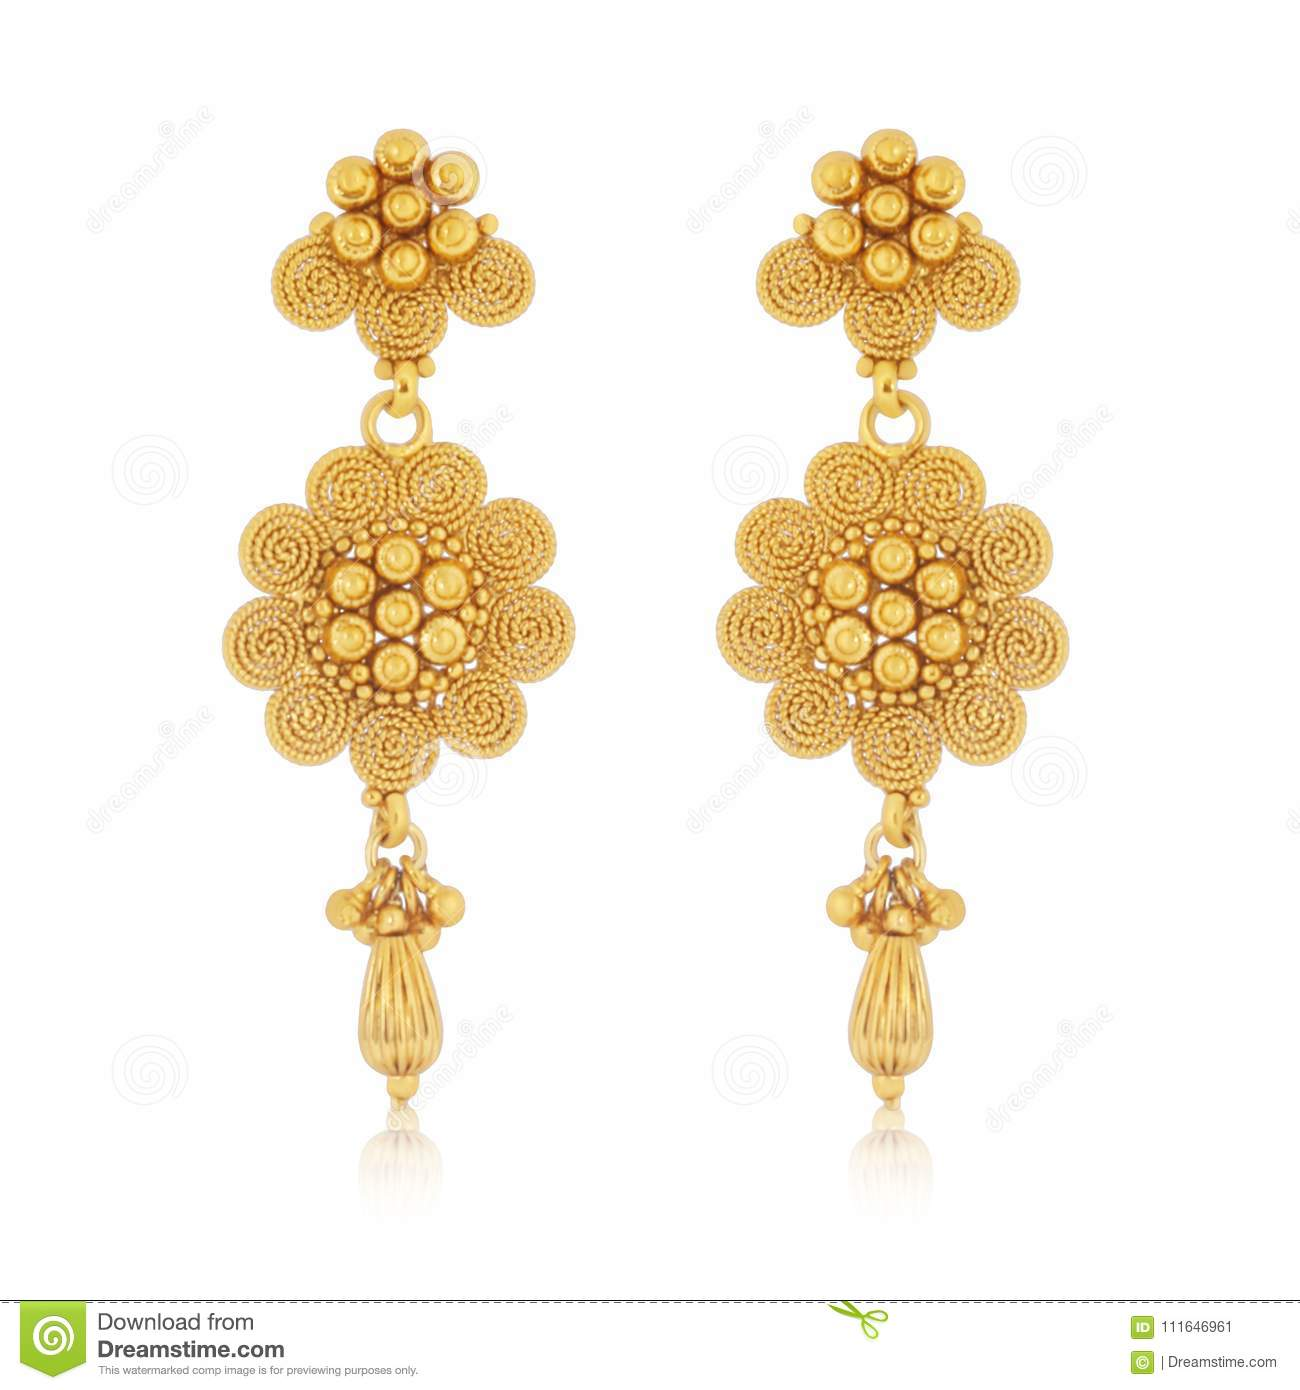 Gold S Amazing Gold Flower Tops In Fancy Design Stock Image Image Of